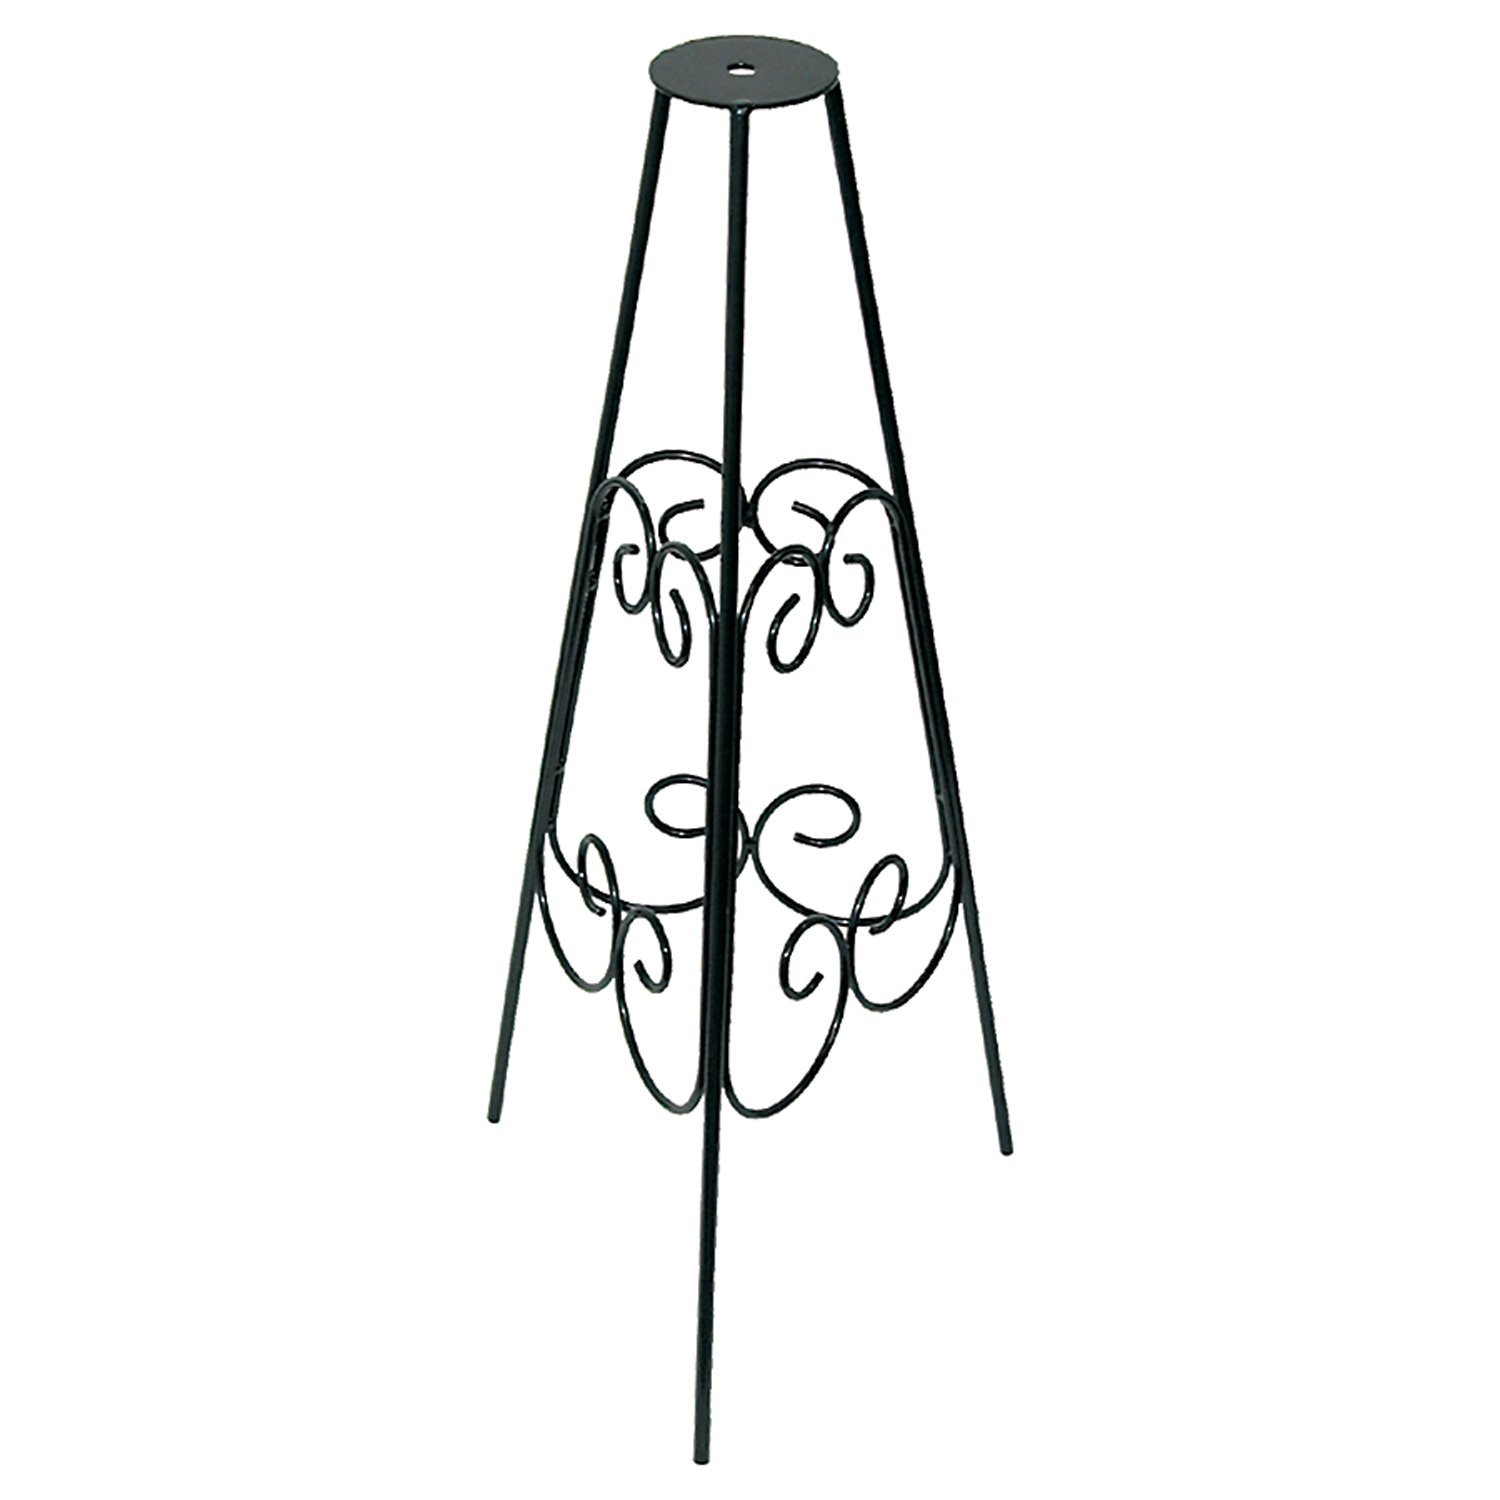 stunning Sundial Pedestal Base Part - 18: Amazon.com : Rome B53-1 Scrolled Sundial Pedestal Bases, Powder Coated  Black Wrought Iron, 24-Inch Height : Outdoor Statues : Garden u0026 Outdoor